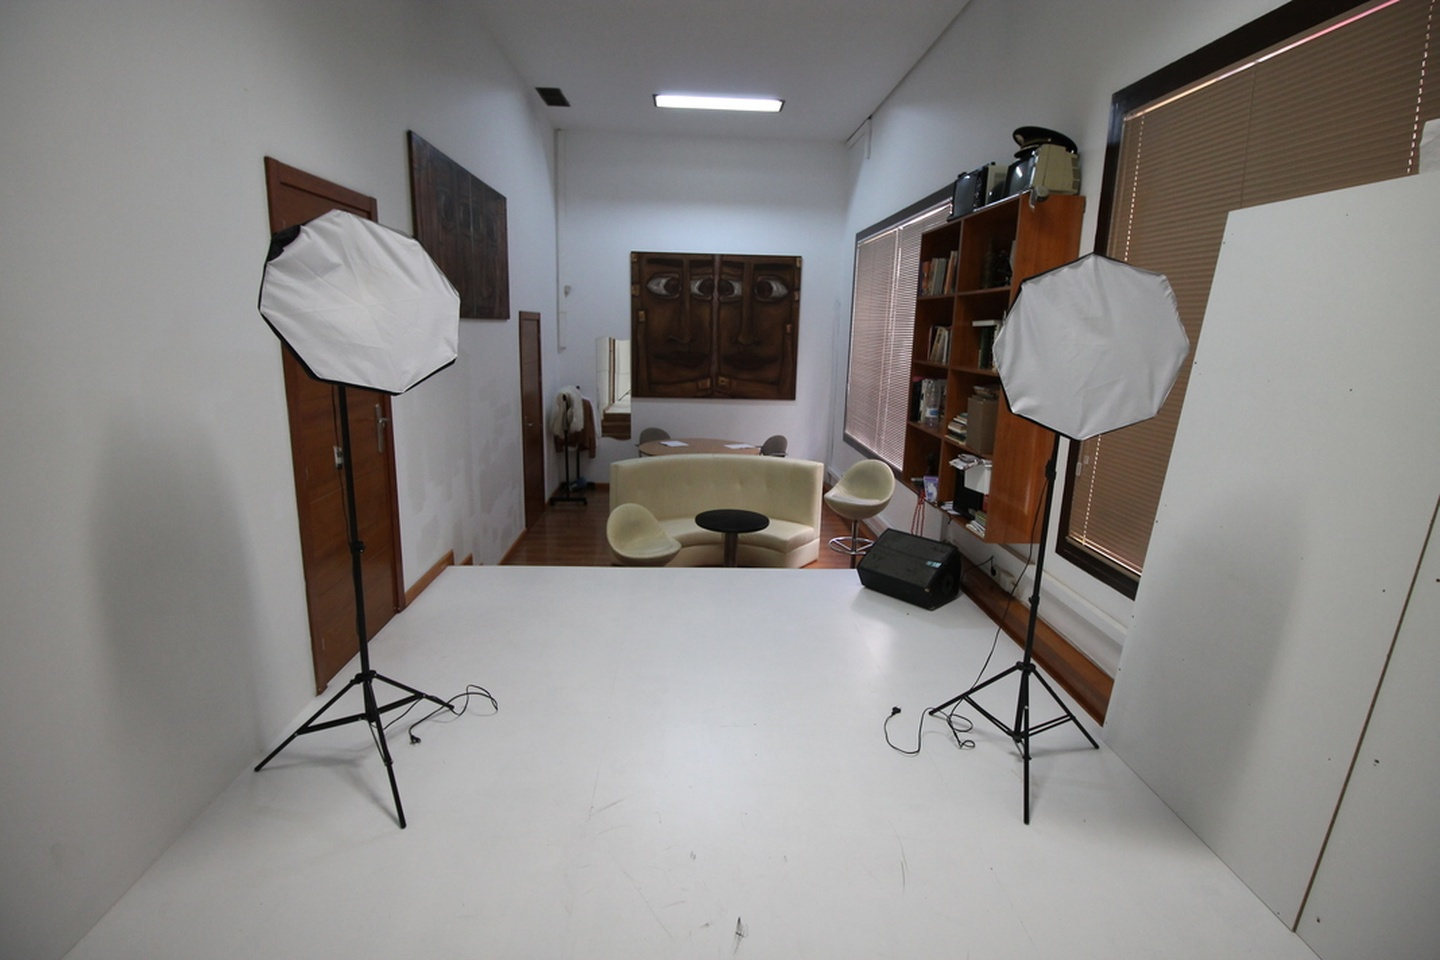 Malaga workshop spaces Photography studio My Casting Coworking - Photography Studio image 1